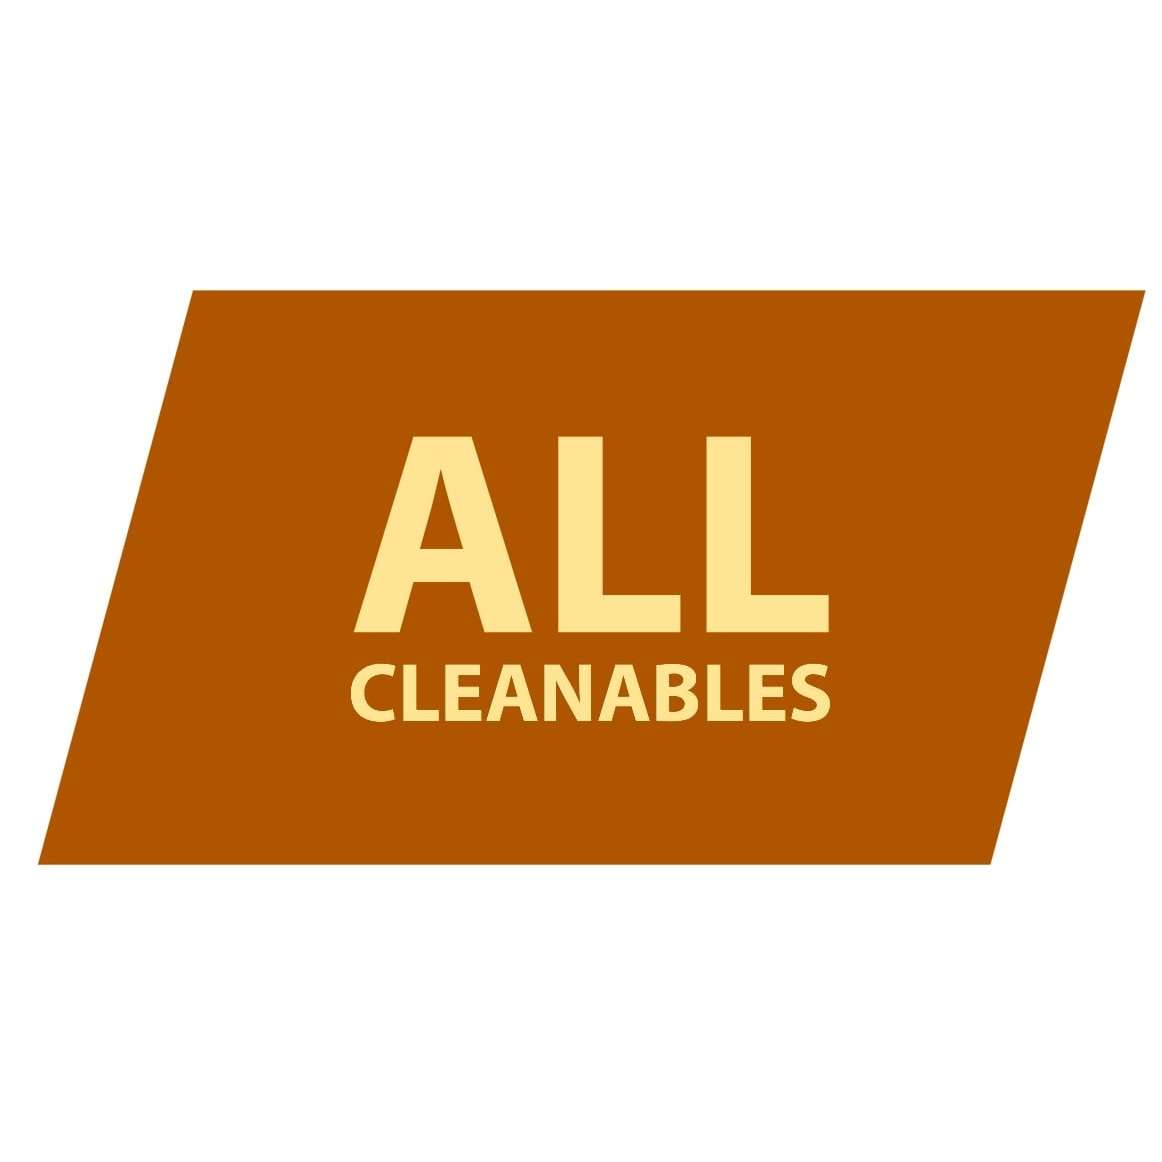 All Cleanables - Consett, Durham DH8 8HE - 08000 314328 | ShowMeLocal.com